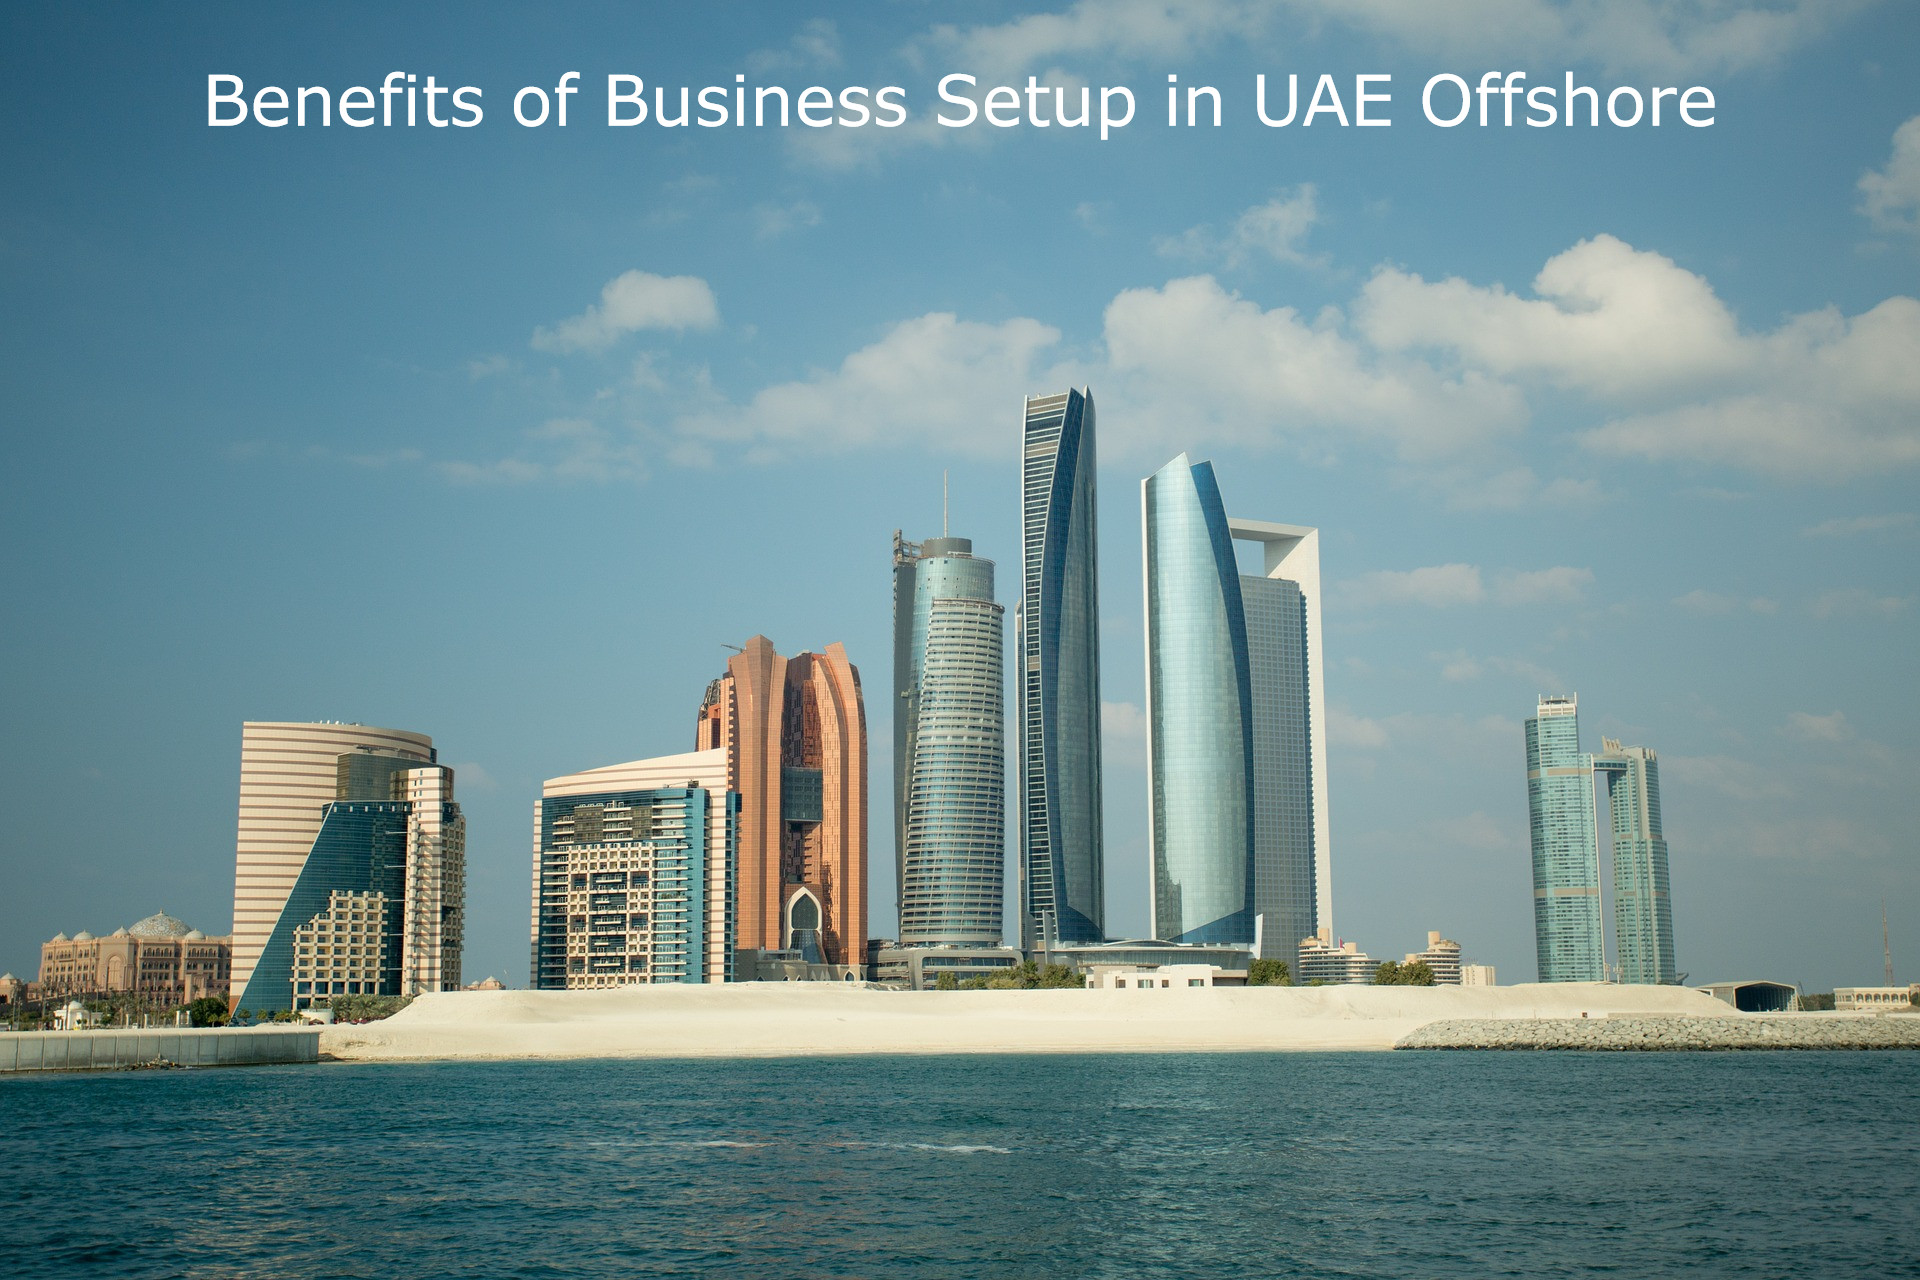 Benefits of Business Setup in UAE Offshore